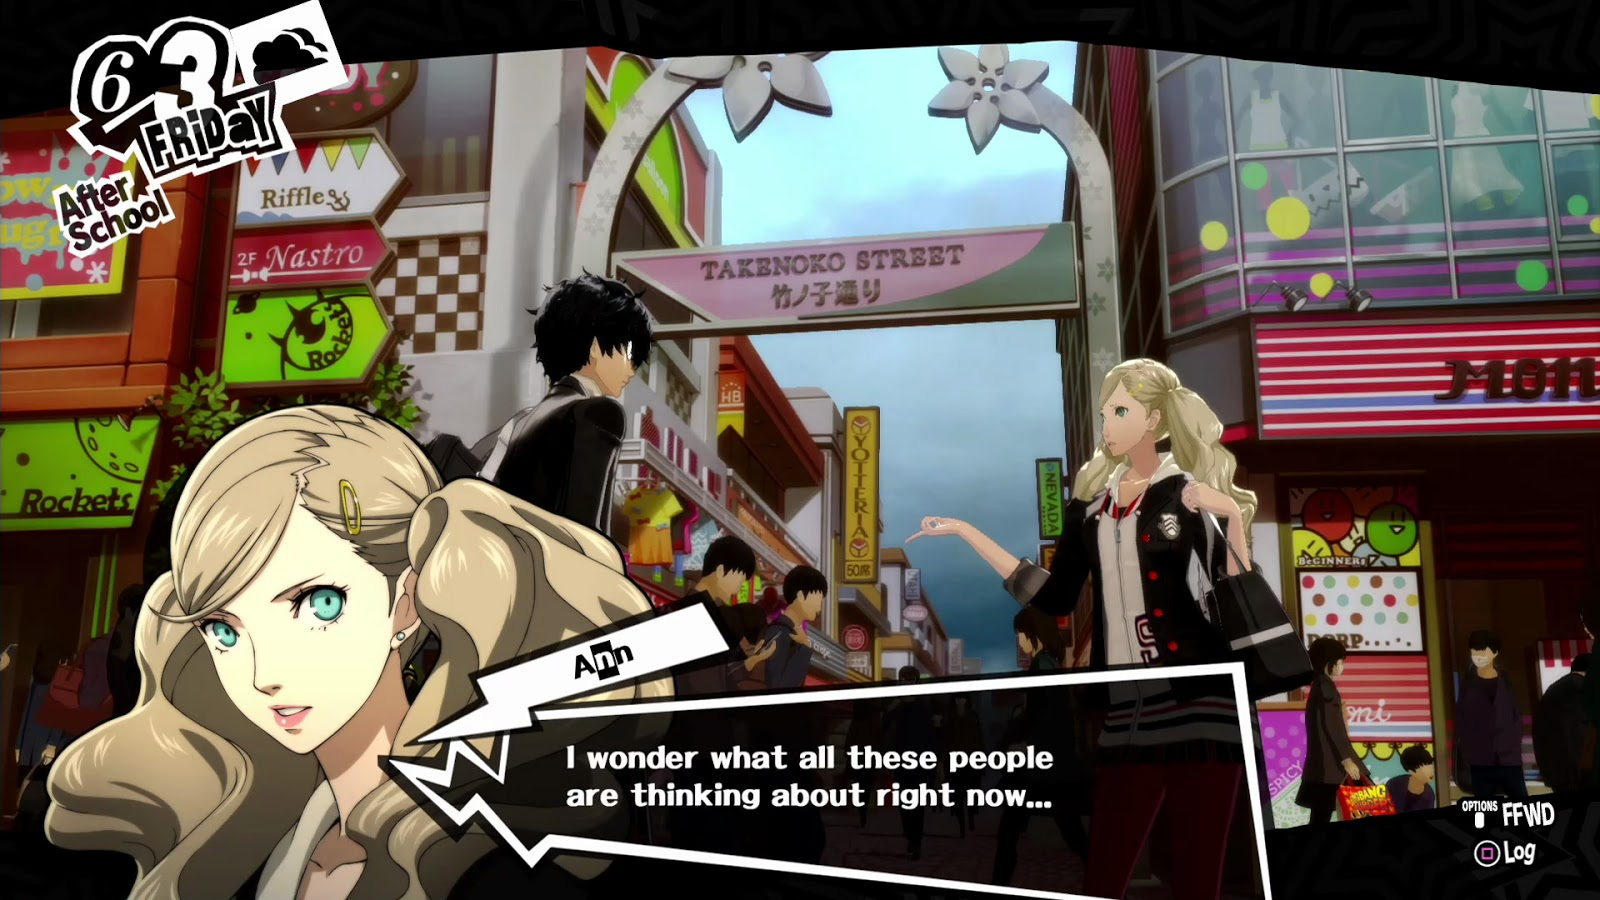 Persona 3 dating multiple girls making 1